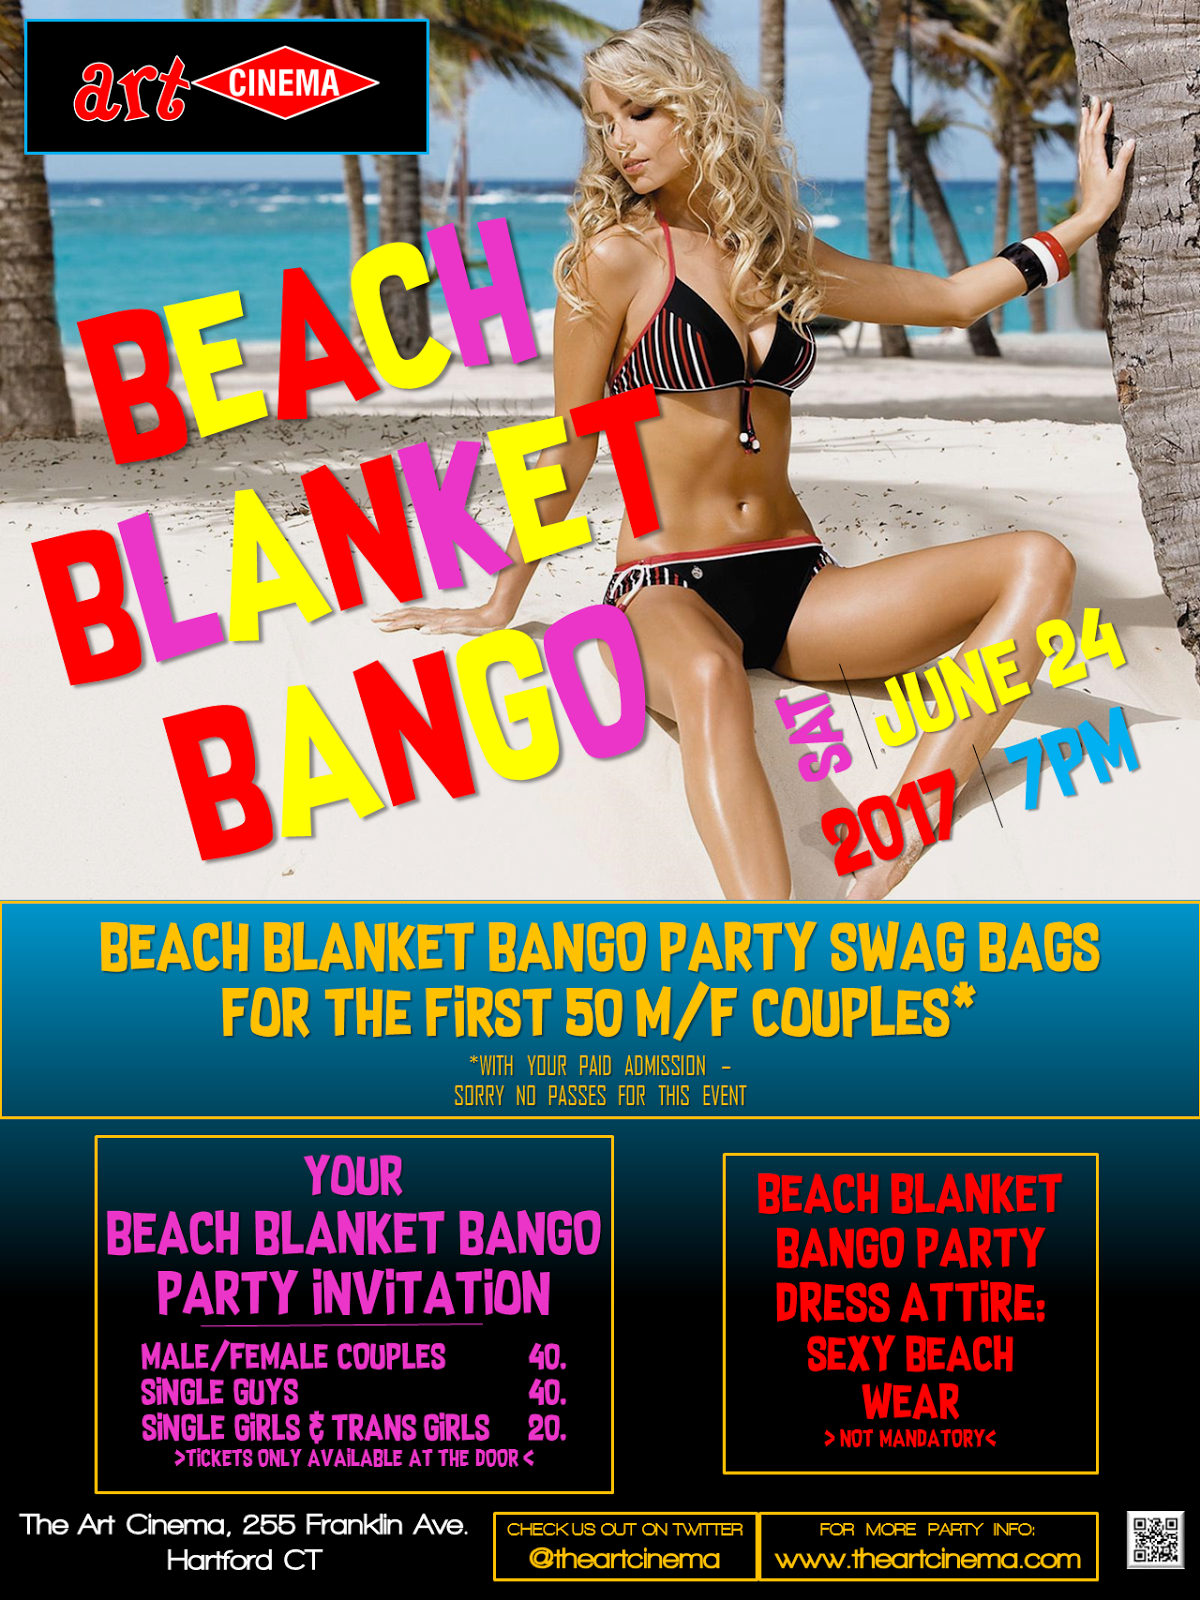 The Next Art Cinema Event in Hartford, CT! Beach Blanket Bango!